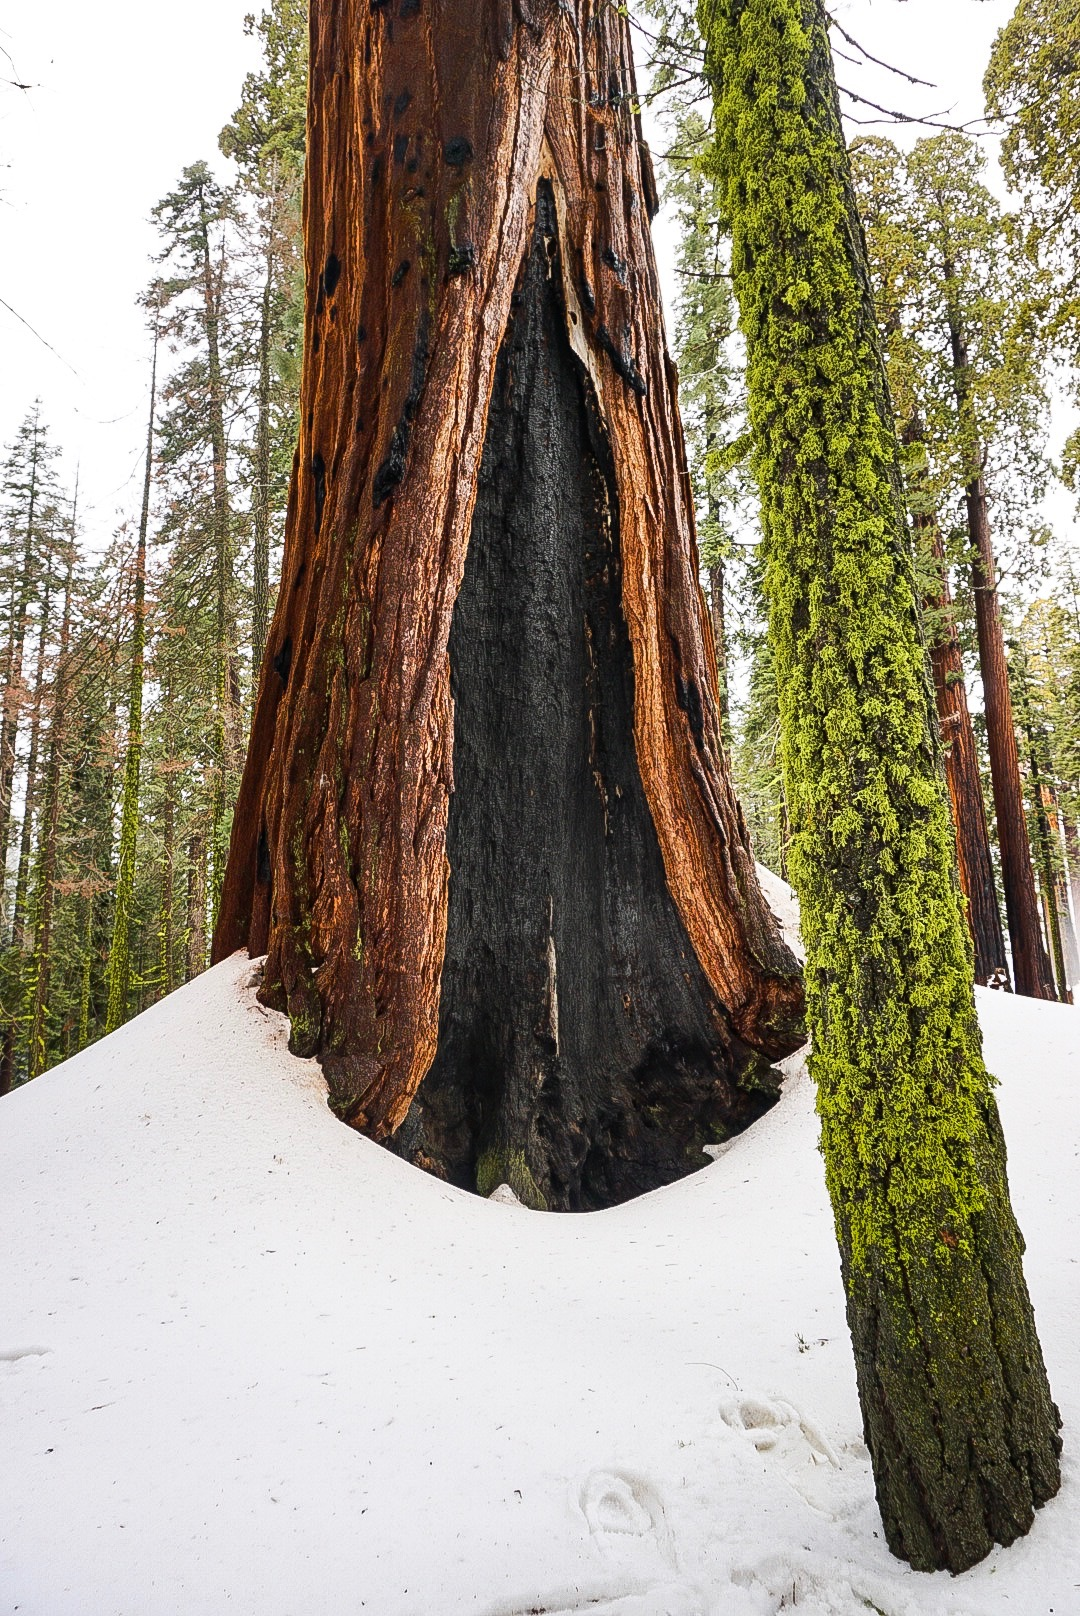 Only in Sequoia can you see trees like this (well probably also up in Humboldt and Redwood National Park)